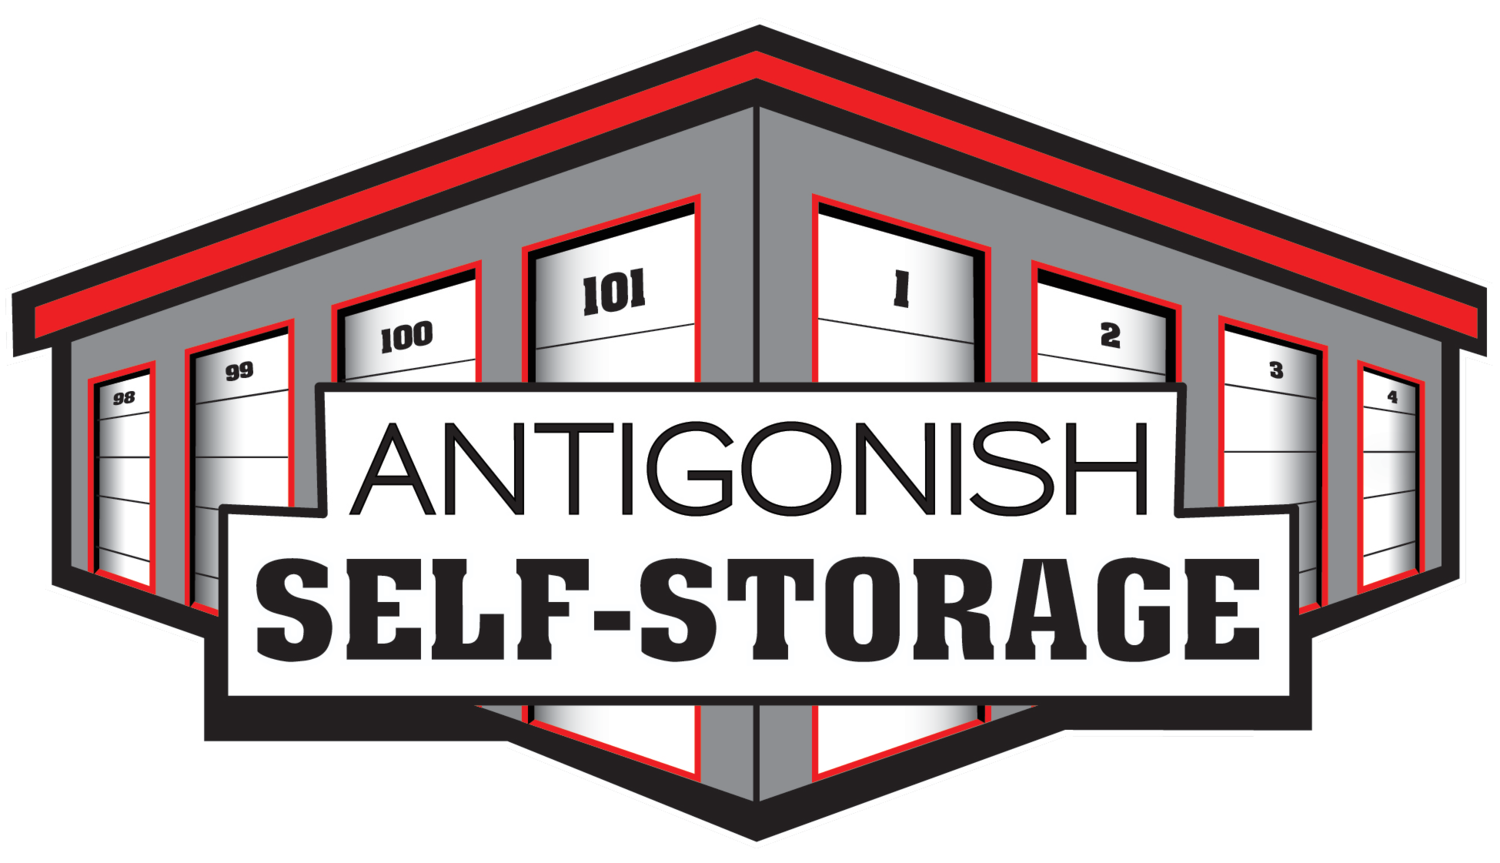 Antigonish Self Storage